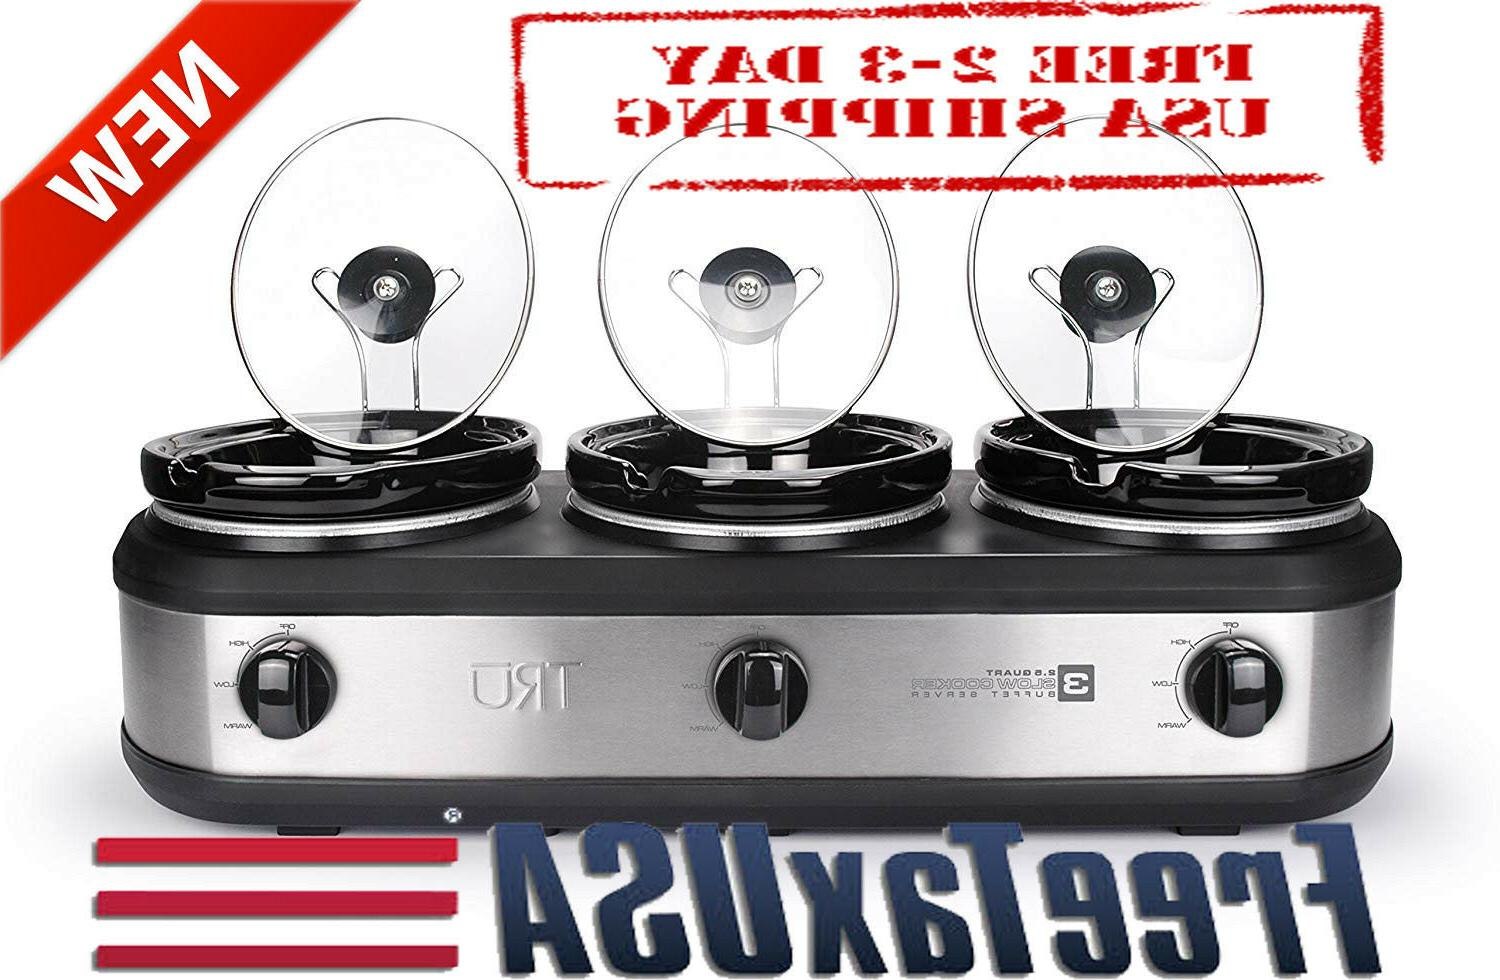 tru bs 325lr slow cookers three oval